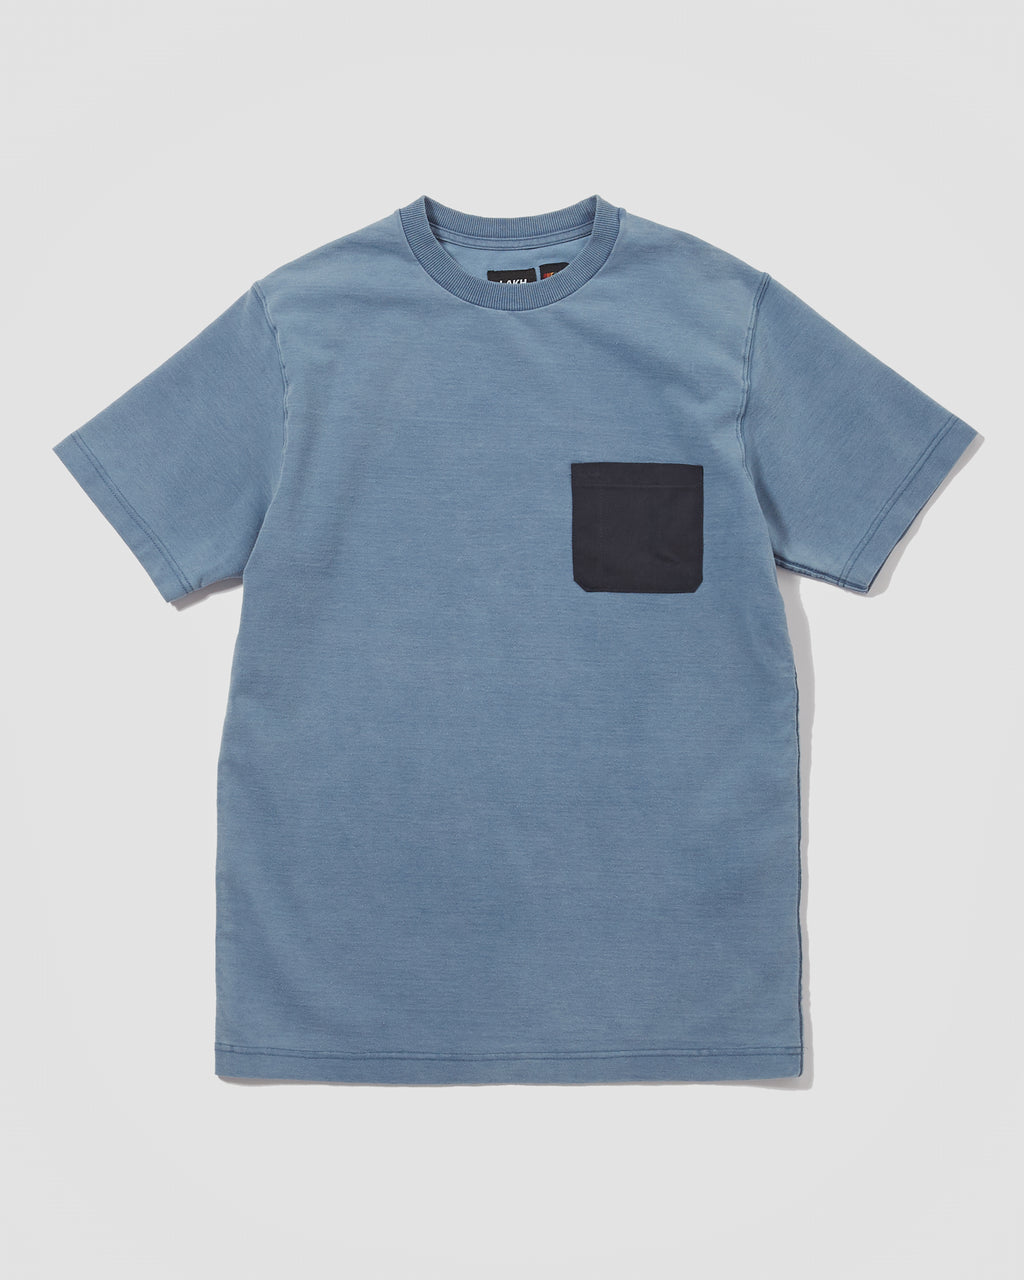 Indigo Tee - Light Blue